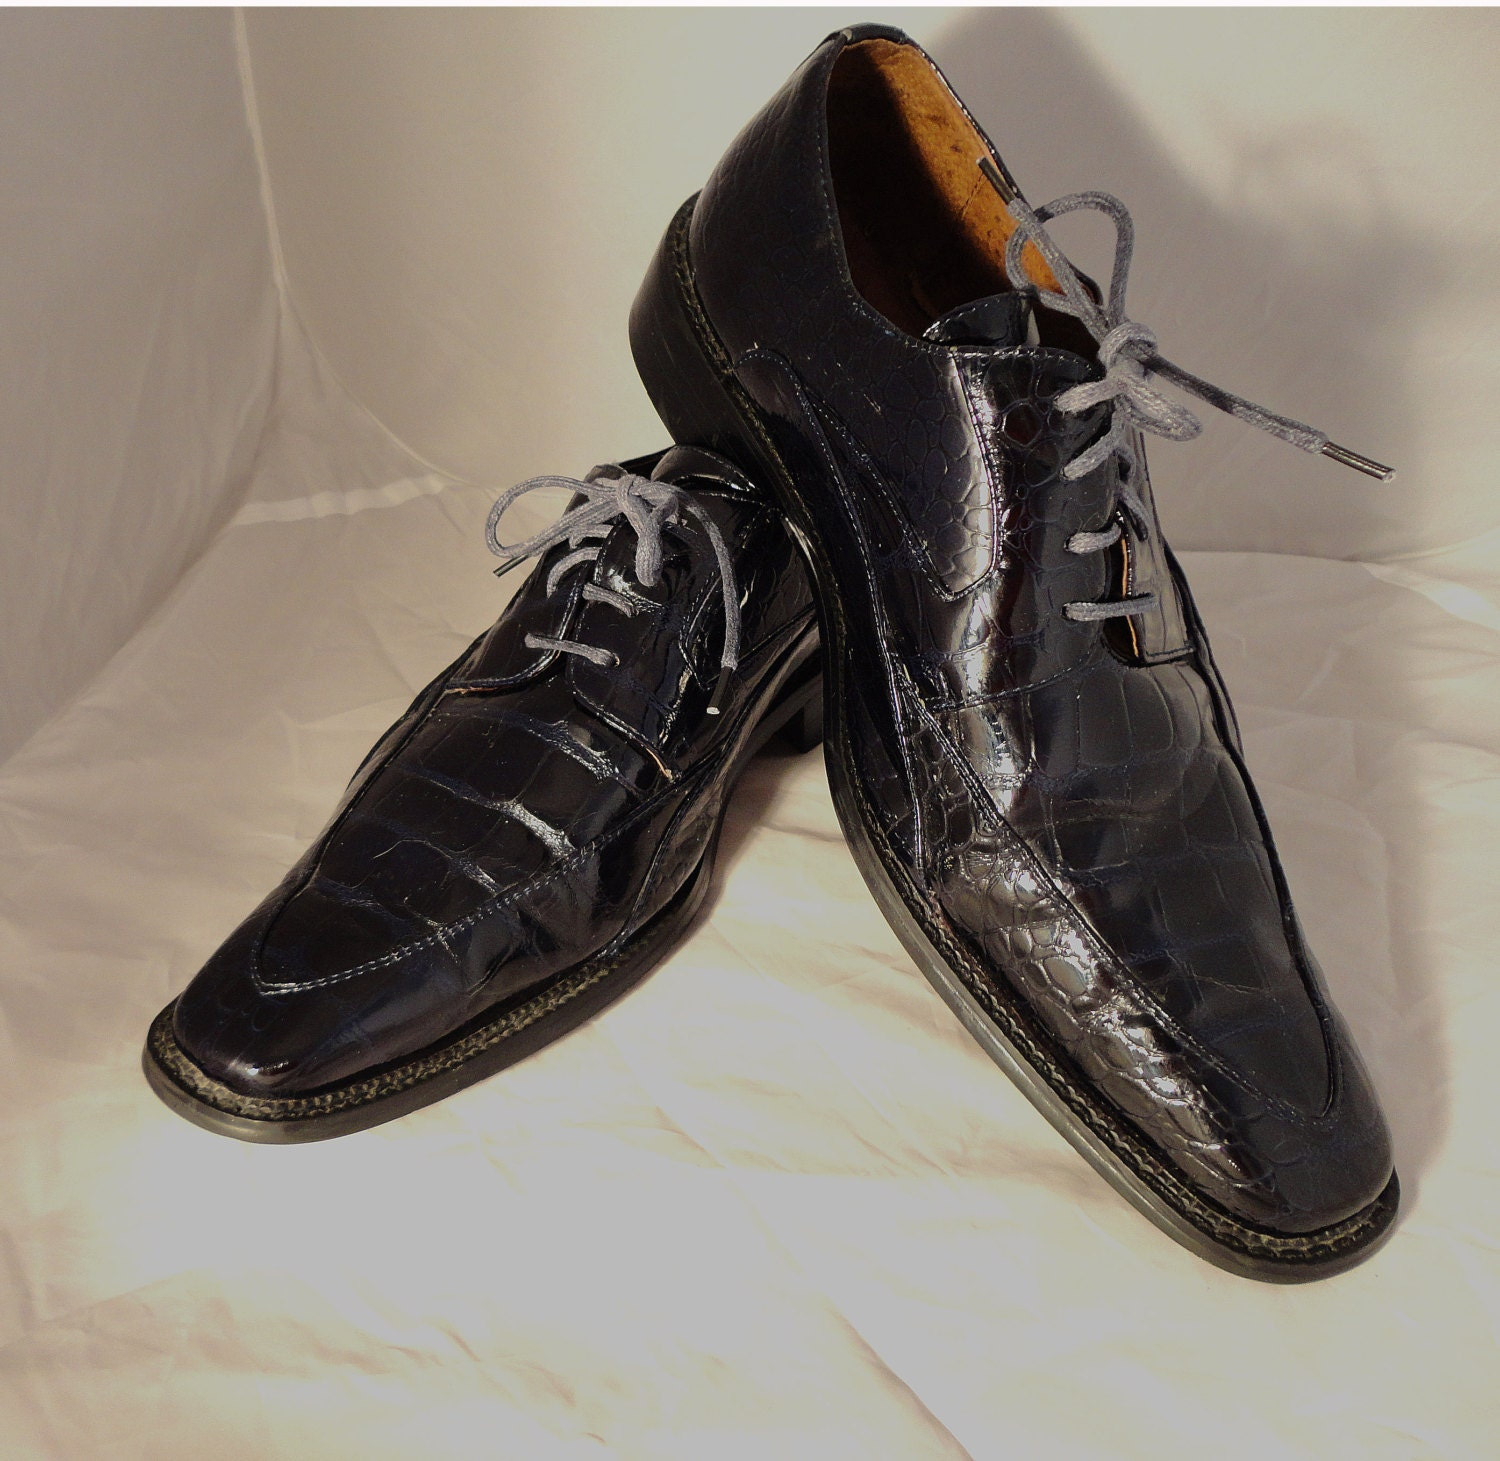 brand mens size 14 dress shoes black patent leather